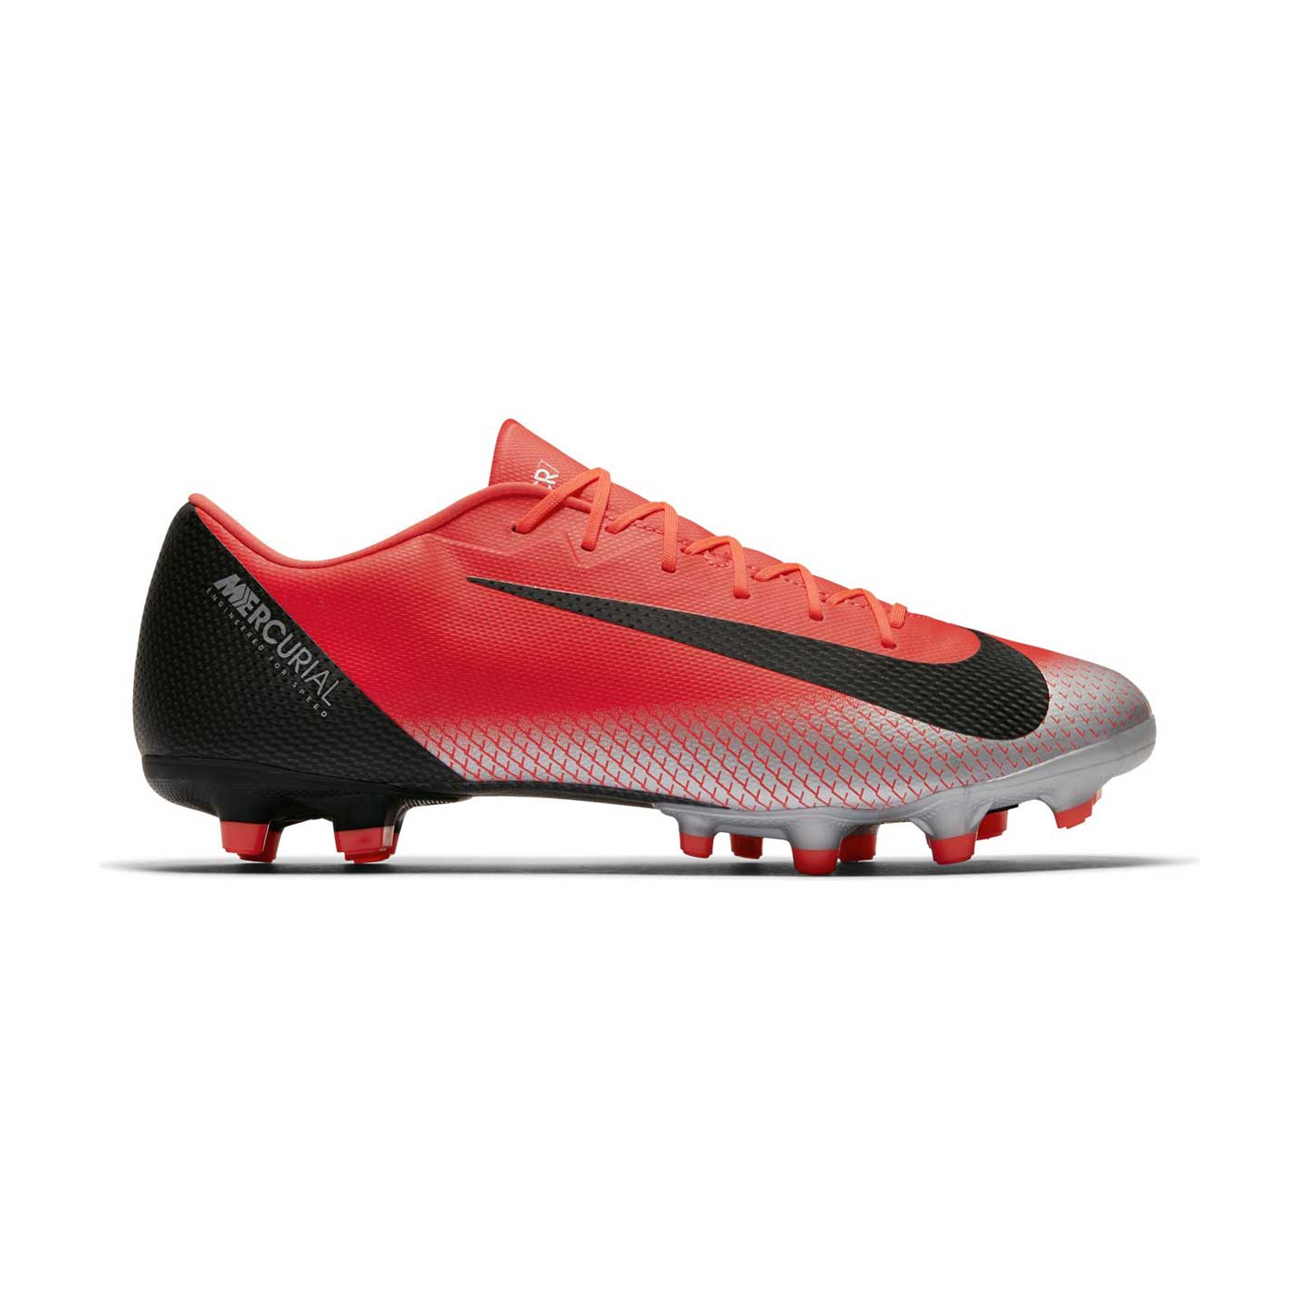 3707978c6 Nike Mens Mercurial Multi Ground Football Boot Vapor XII Academy Bright  Crimson